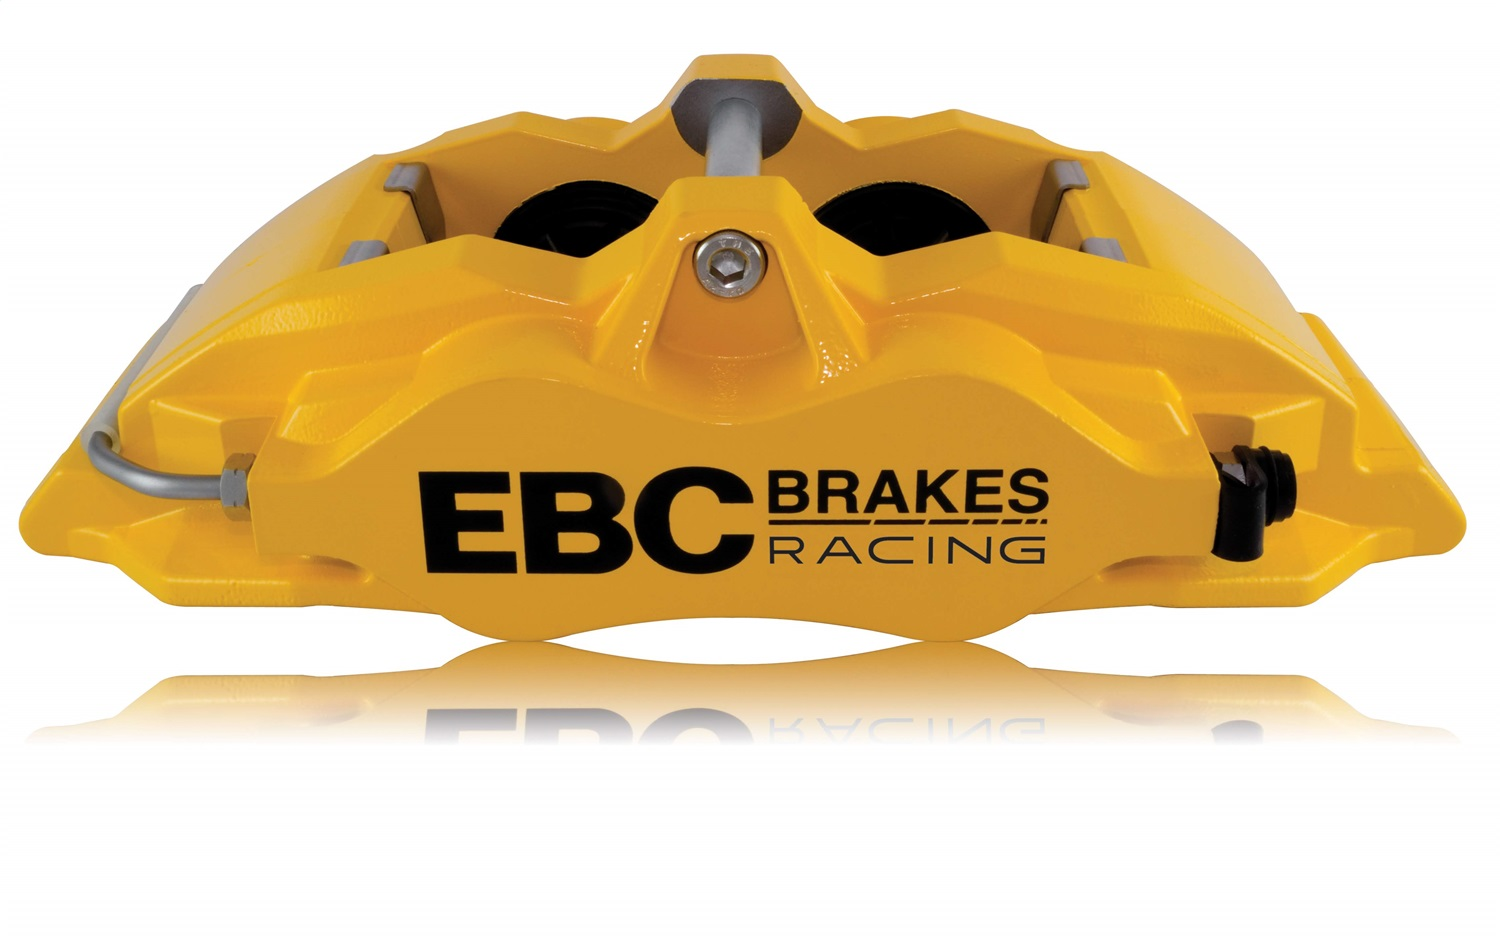 EBC Brakes BC4103YEL-L Apollo-4 Brake Calipers Fits 13-18 Focus